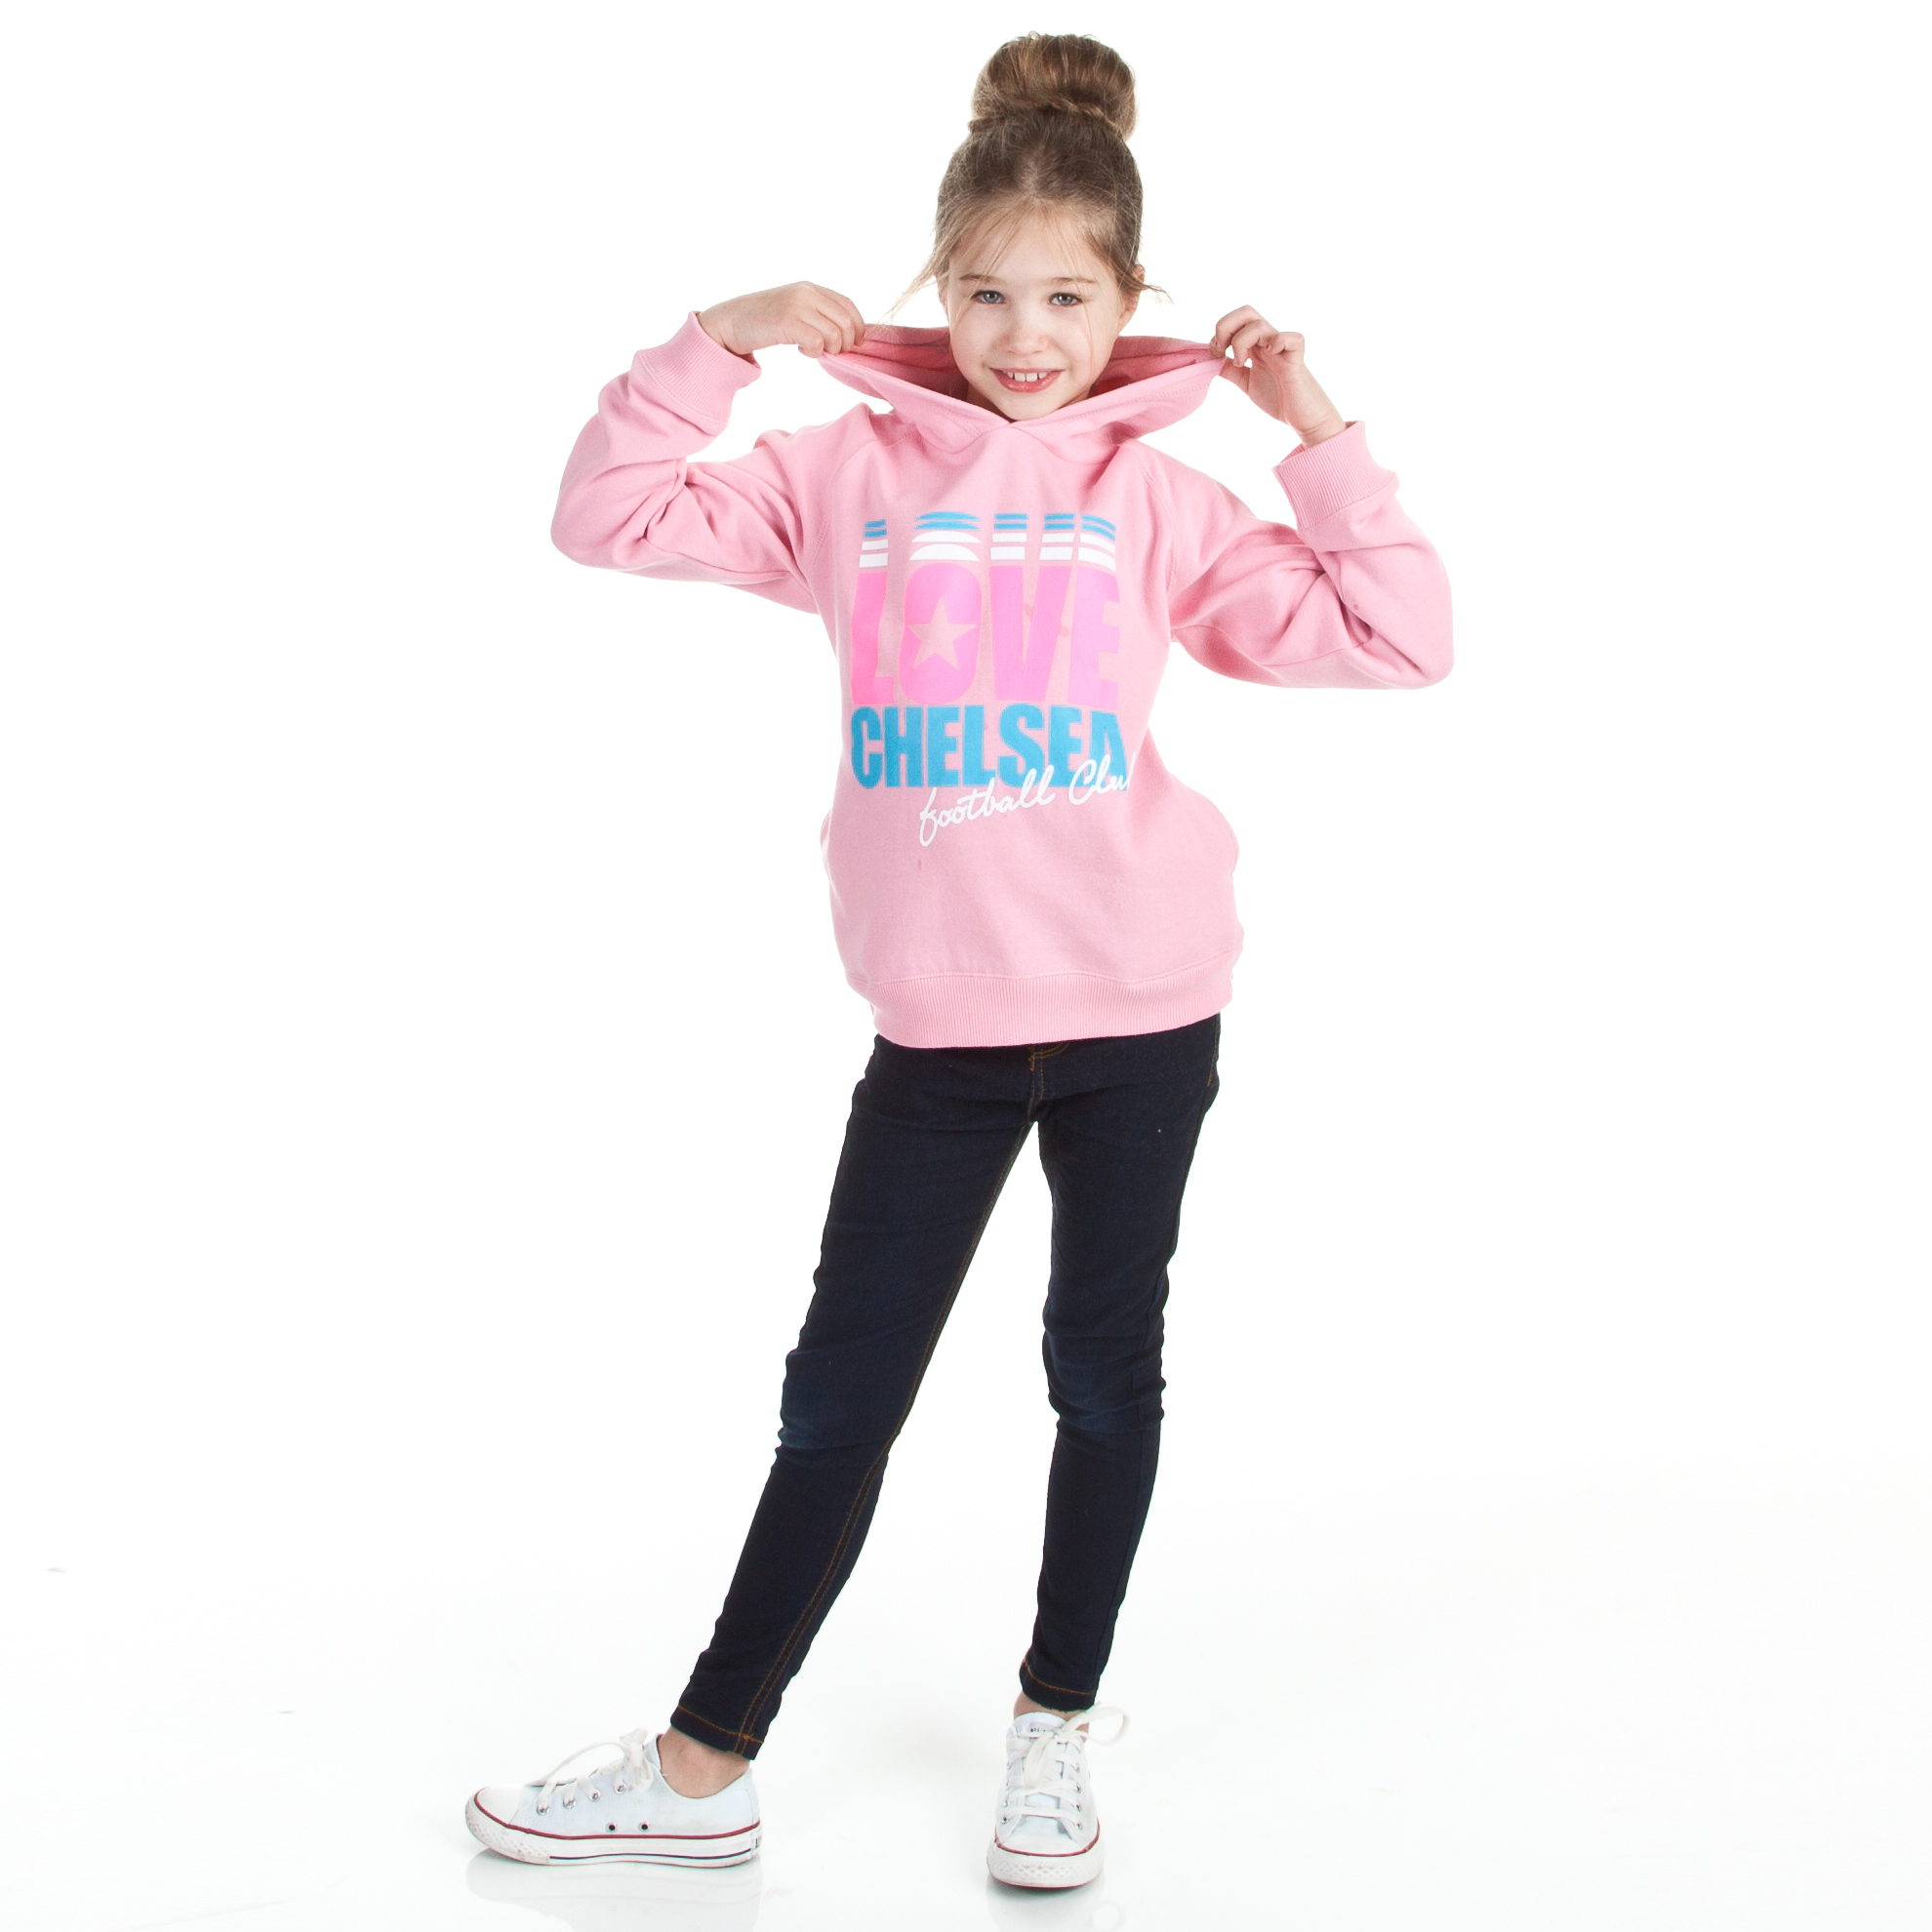 Chelsea Love Graphic Hoody - Sherbet Pink - Older Girls